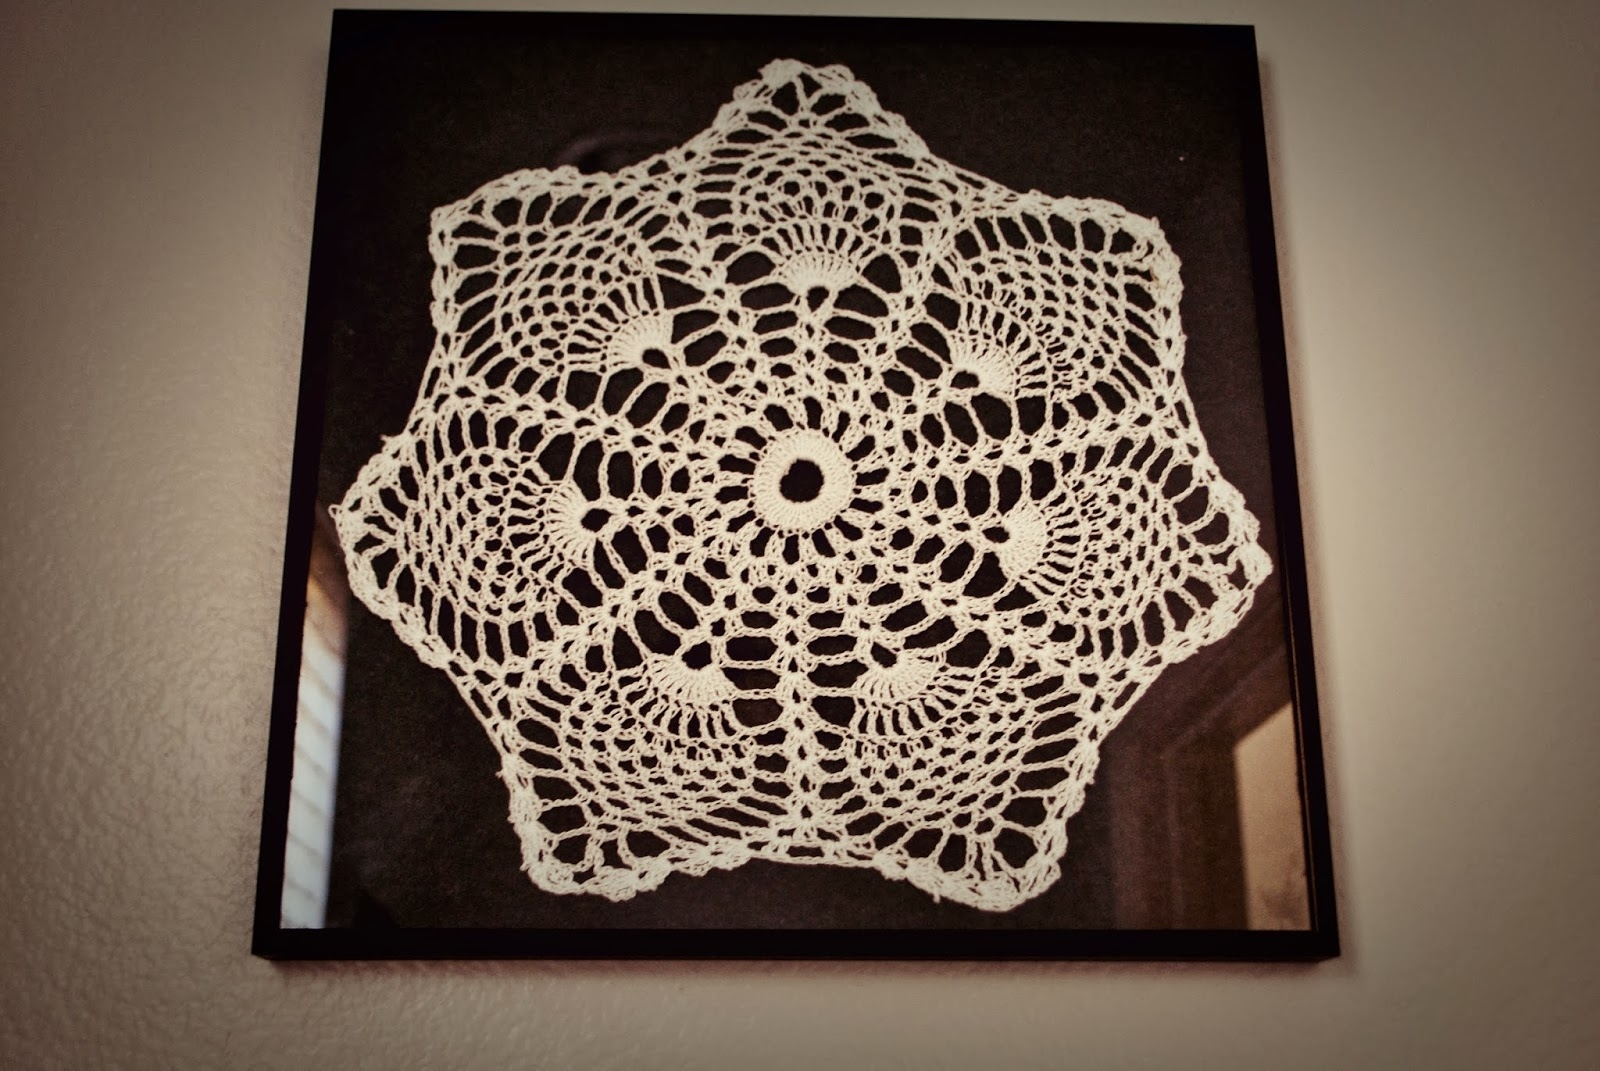 Maya's Wonderland: Framed Crochet Doilies Wall Art Intended For Current Crochet Wall Art (Gallery 13 of 20)